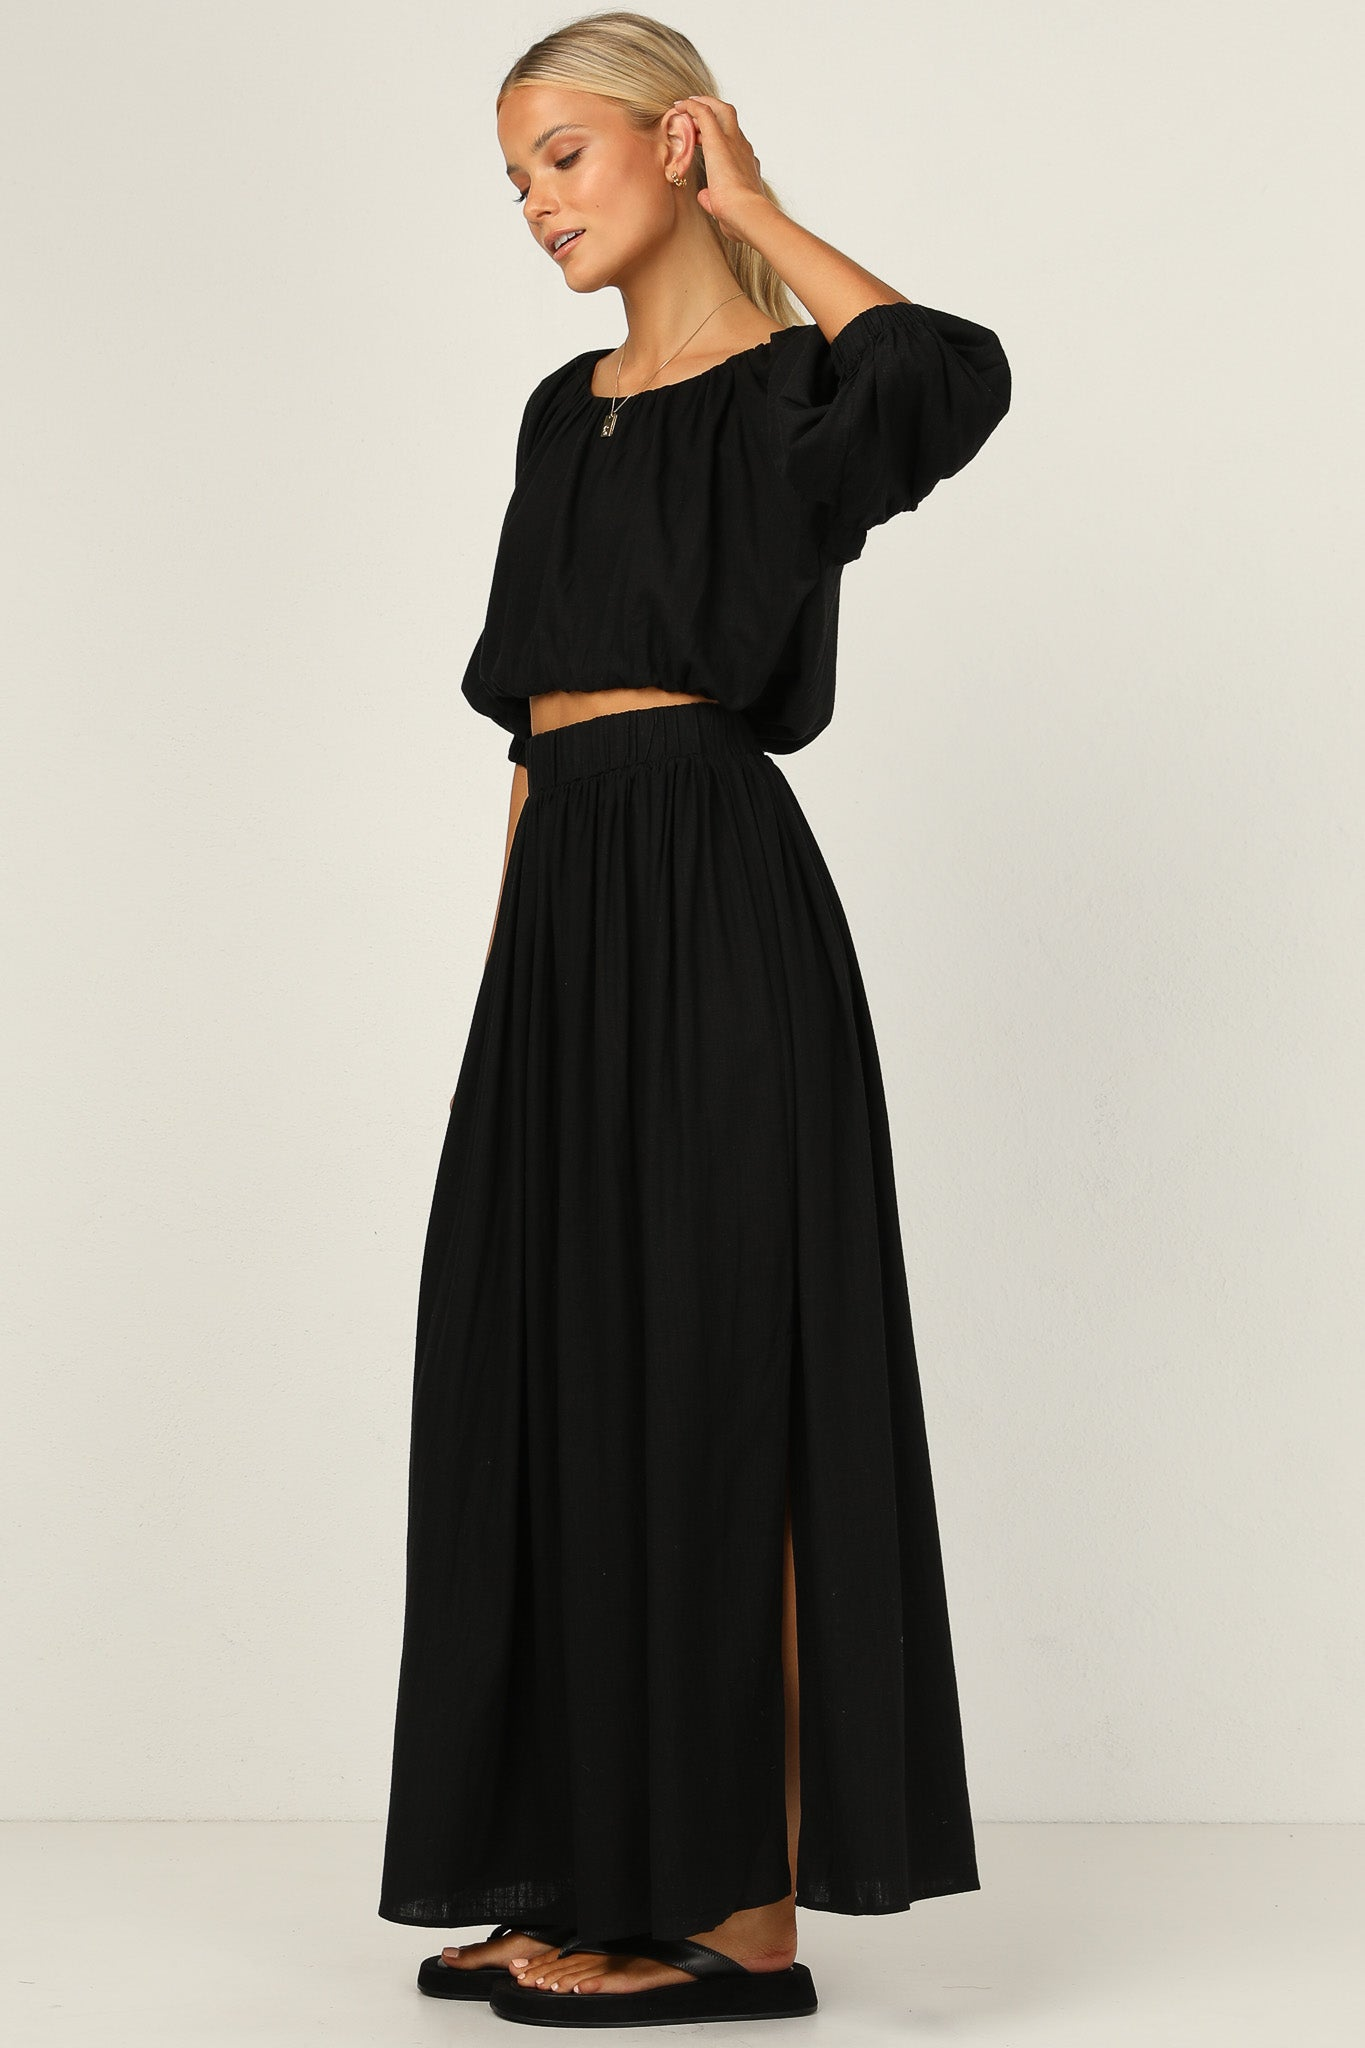 Bowie Skirt (Black)